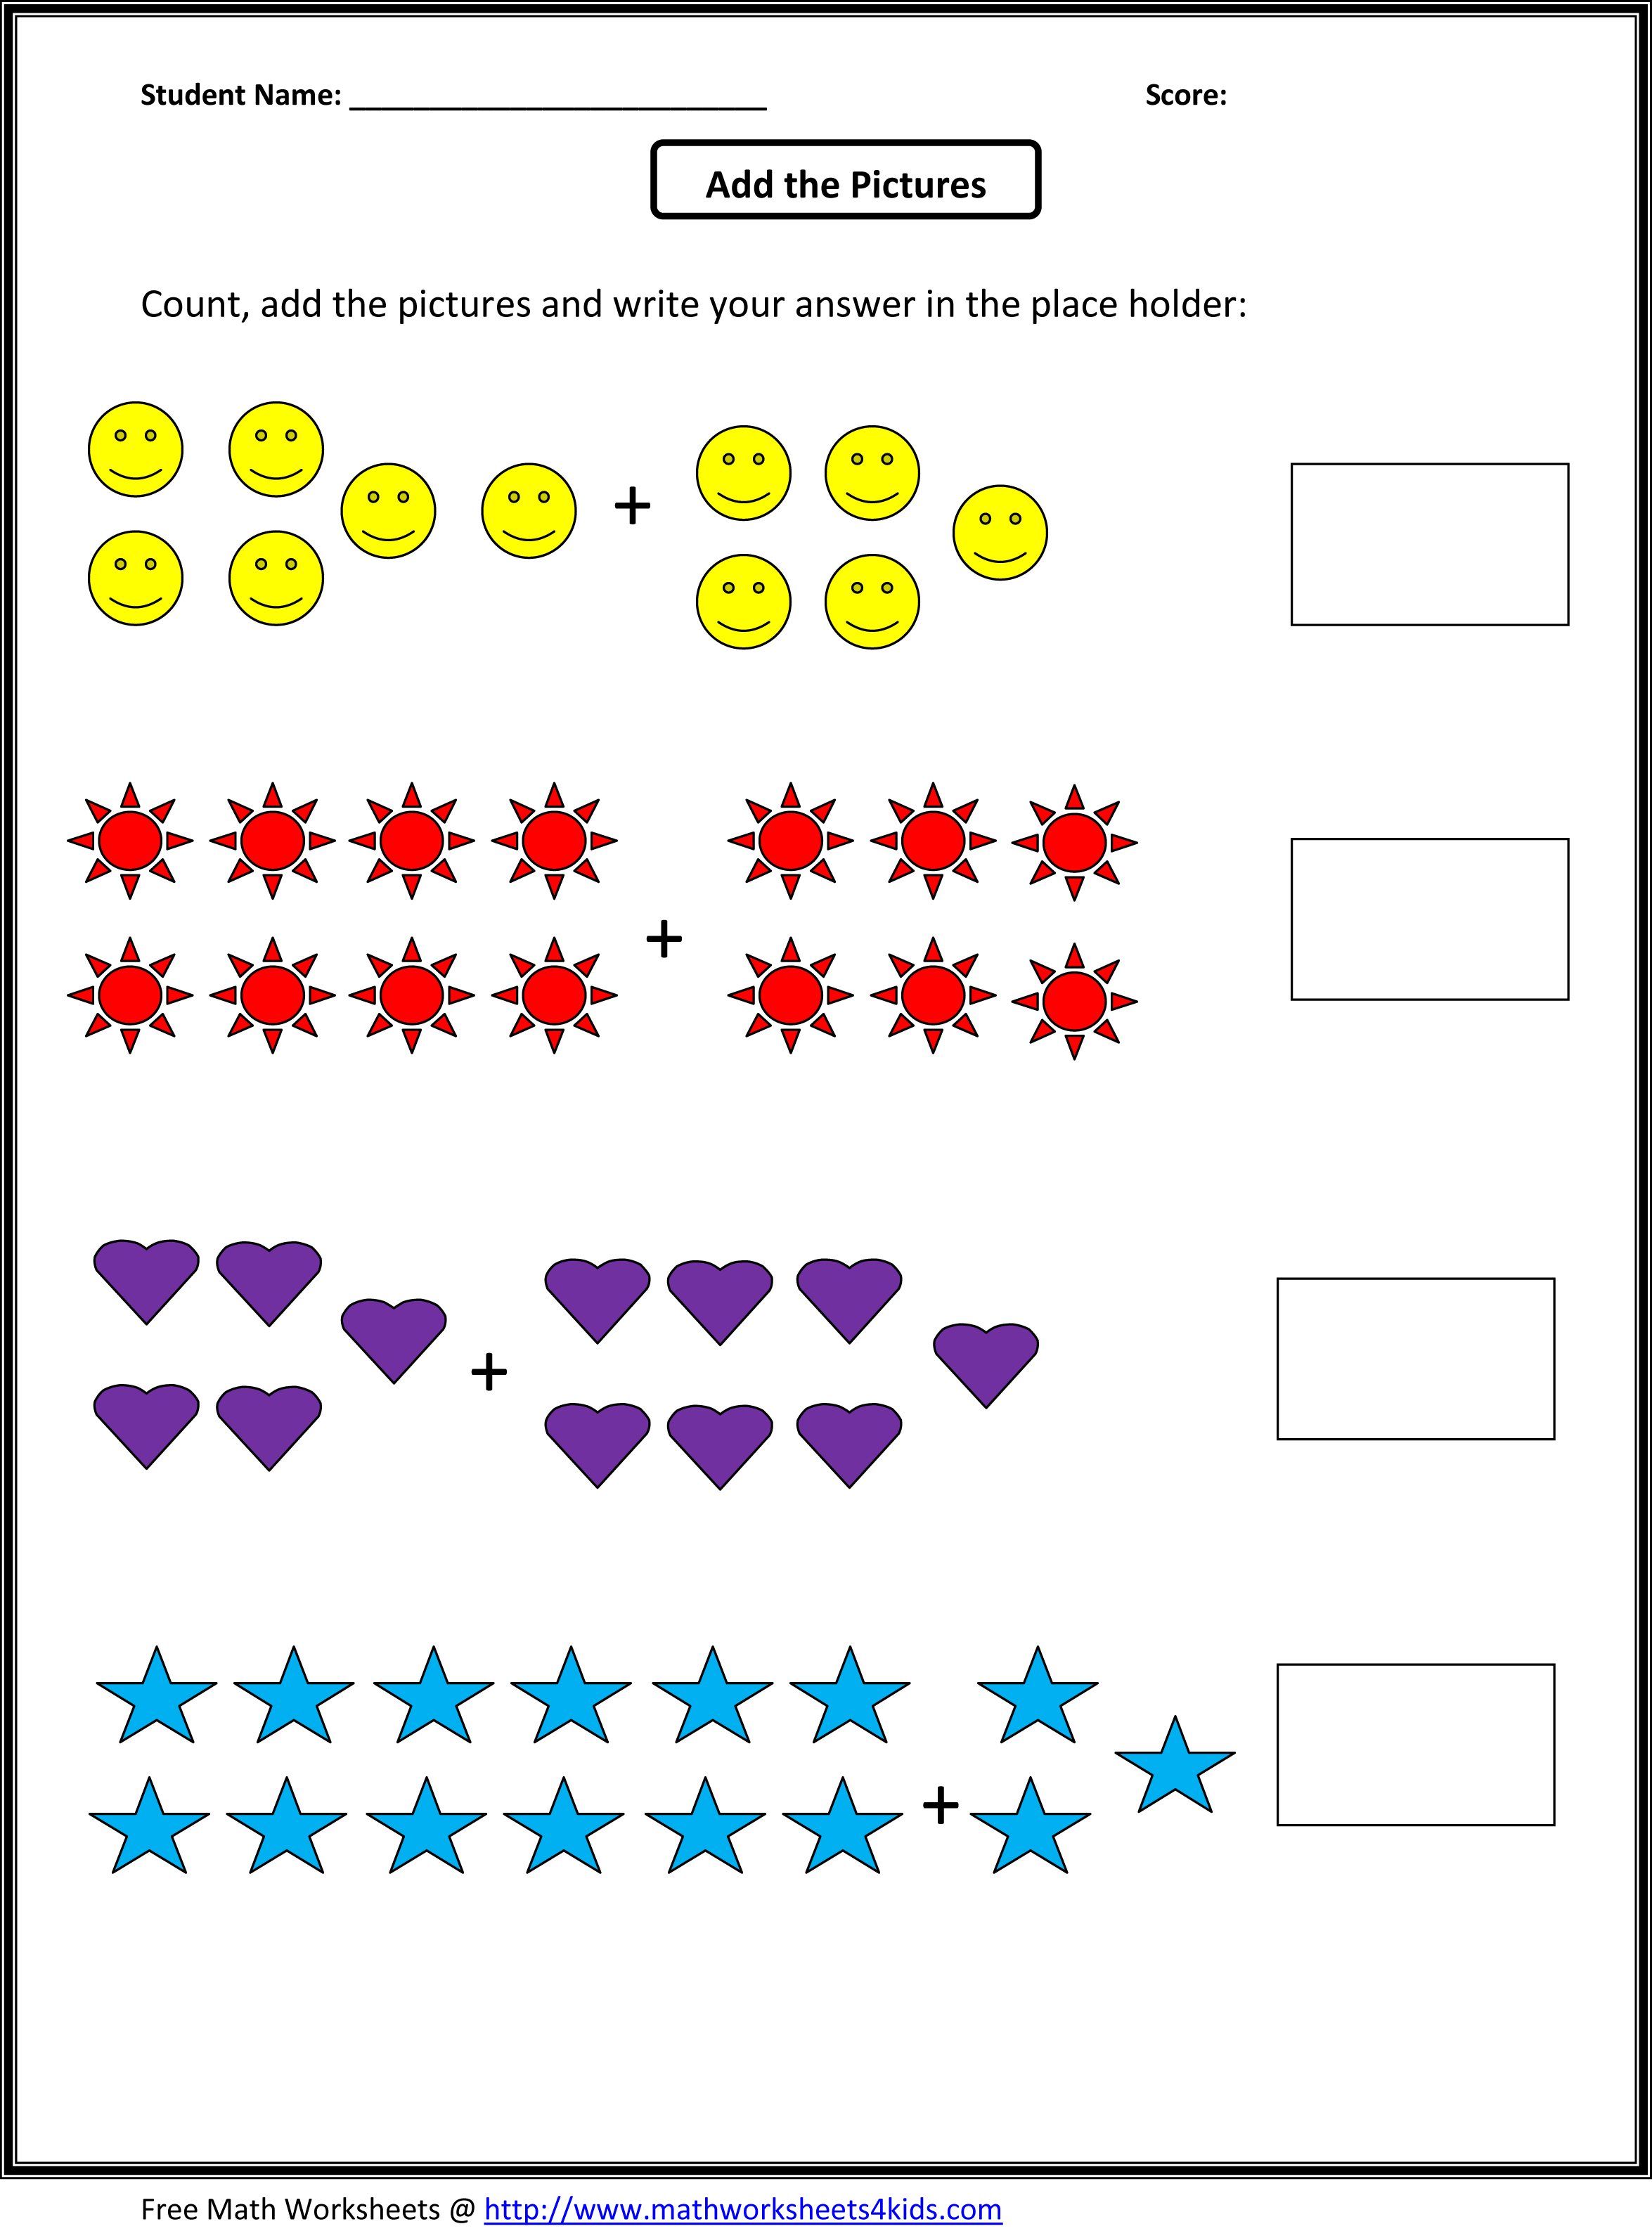 Proatmealus  Outstanding Grade  Maths Worksheet  Reocurent With Exquisite Math Worksheets For St Grade Free  Reocurent With Beauteous Learning Spanish Worksheets Also Money Worksheets Year  In Addition One Sided Limits Worksheet And Worksheet Stars And The Hr Diagram Answers As Well As News Report Worksheet Additionally Number Worksheets   From Reocurentcom With Proatmealus  Exquisite Grade  Maths Worksheet  Reocurent With Beauteous Math Worksheets For St Grade Free  Reocurent And Outstanding Learning Spanish Worksheets Also Money Worksheets Year  In Addition One Sided Limits Worksheet From Reocurentcom